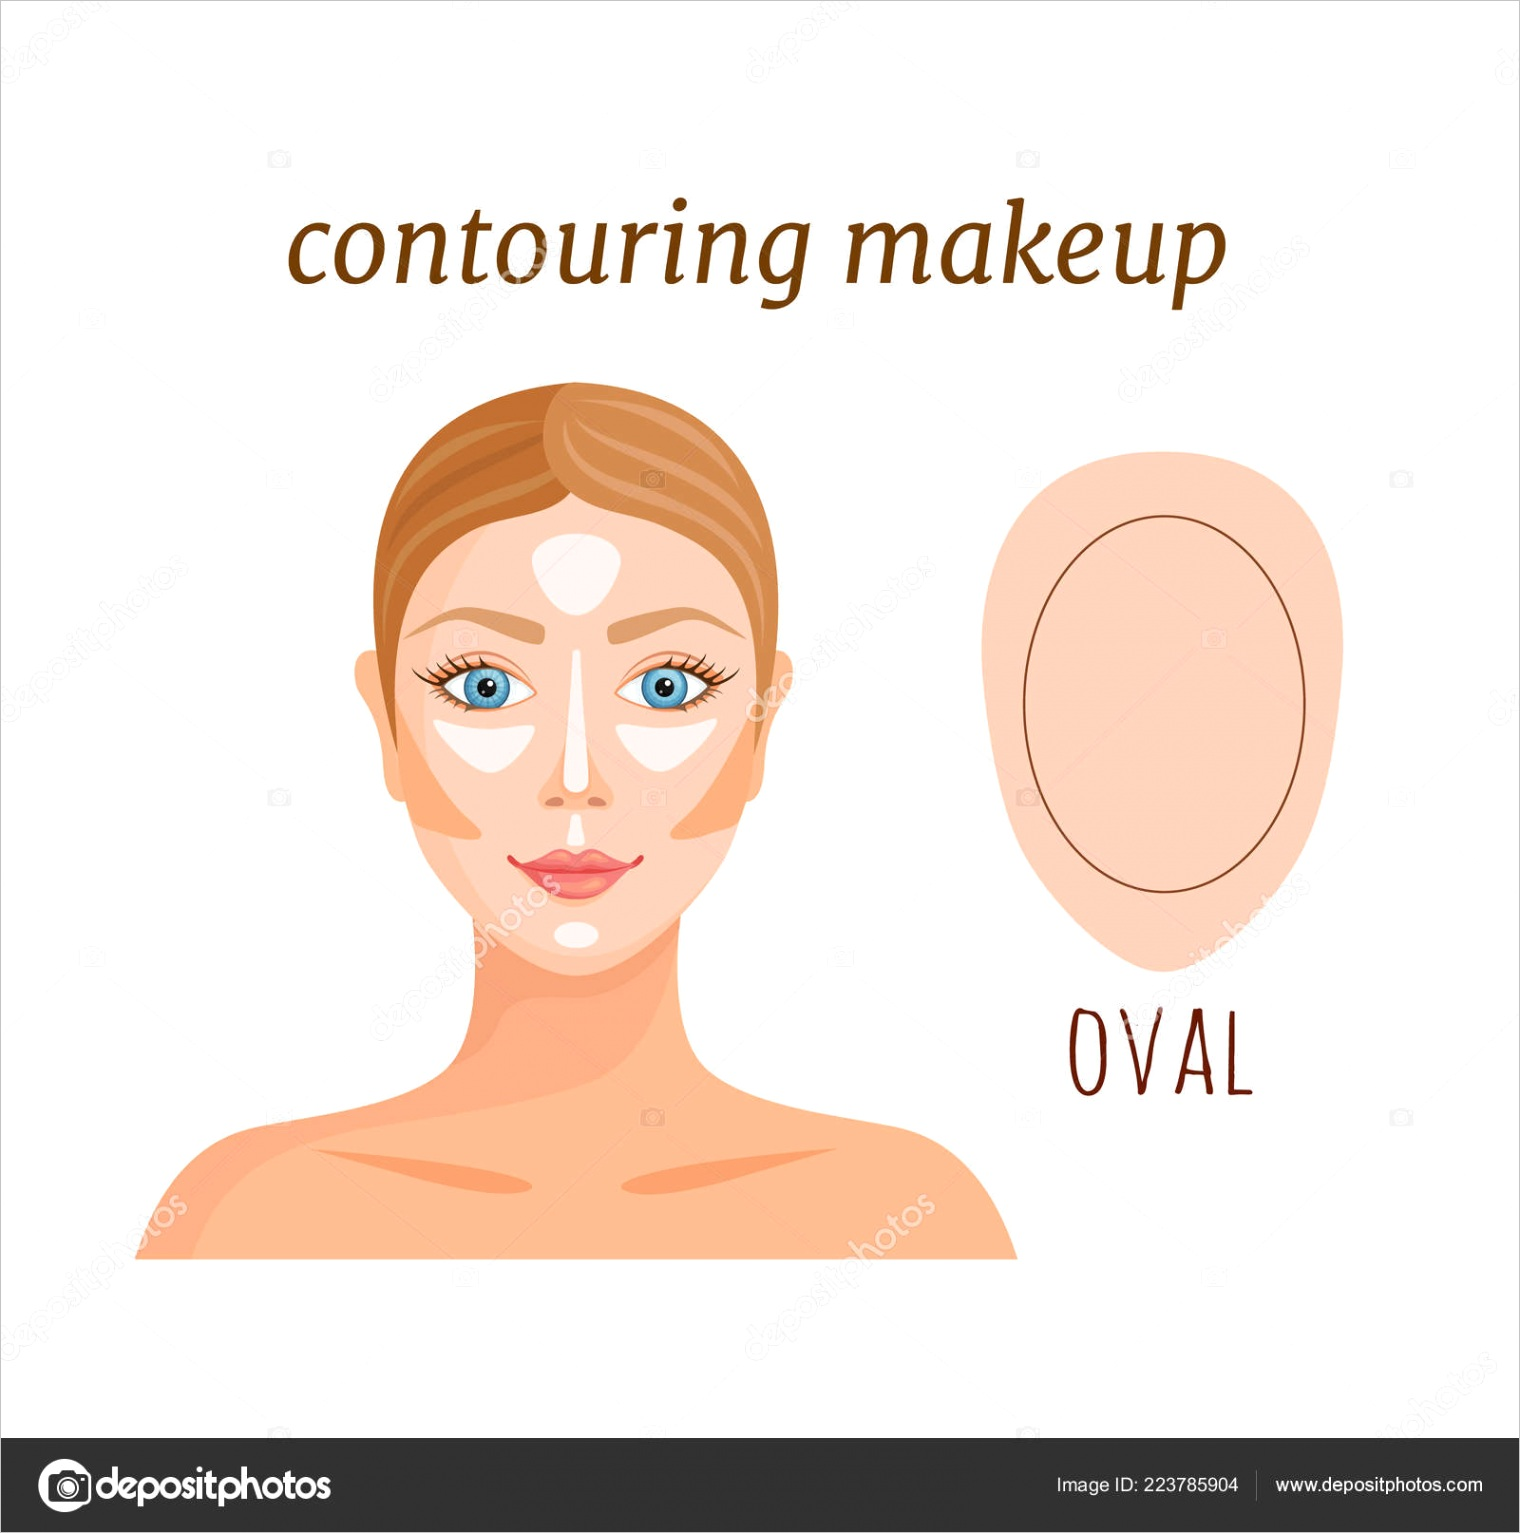 stock illustration makeup template of female faceml